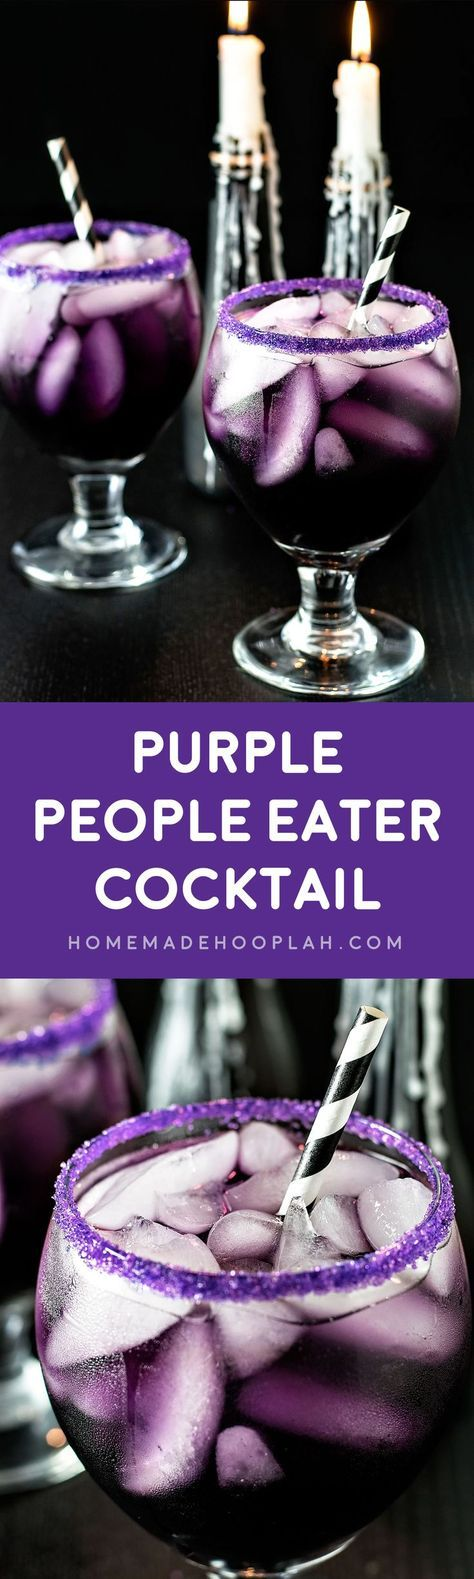 Purple People Eater Cocktail! A tasty (and creepy!) cocktail that get's it's purple hue from blue curacao, grenadine, and cranberry juice. | http://HomemadeHooplah.com